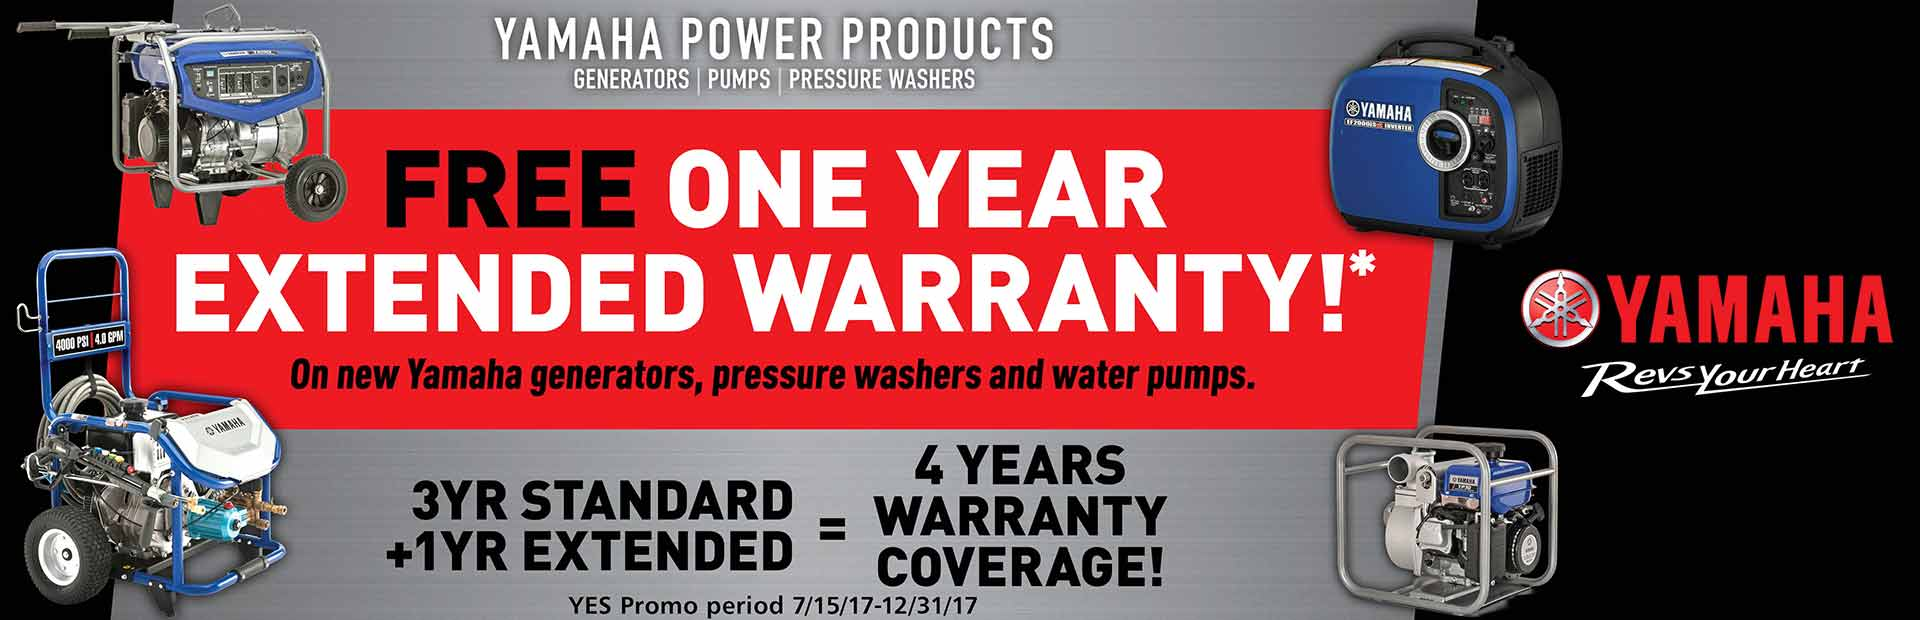 Yamaha: Free One-Year Extended Warranty